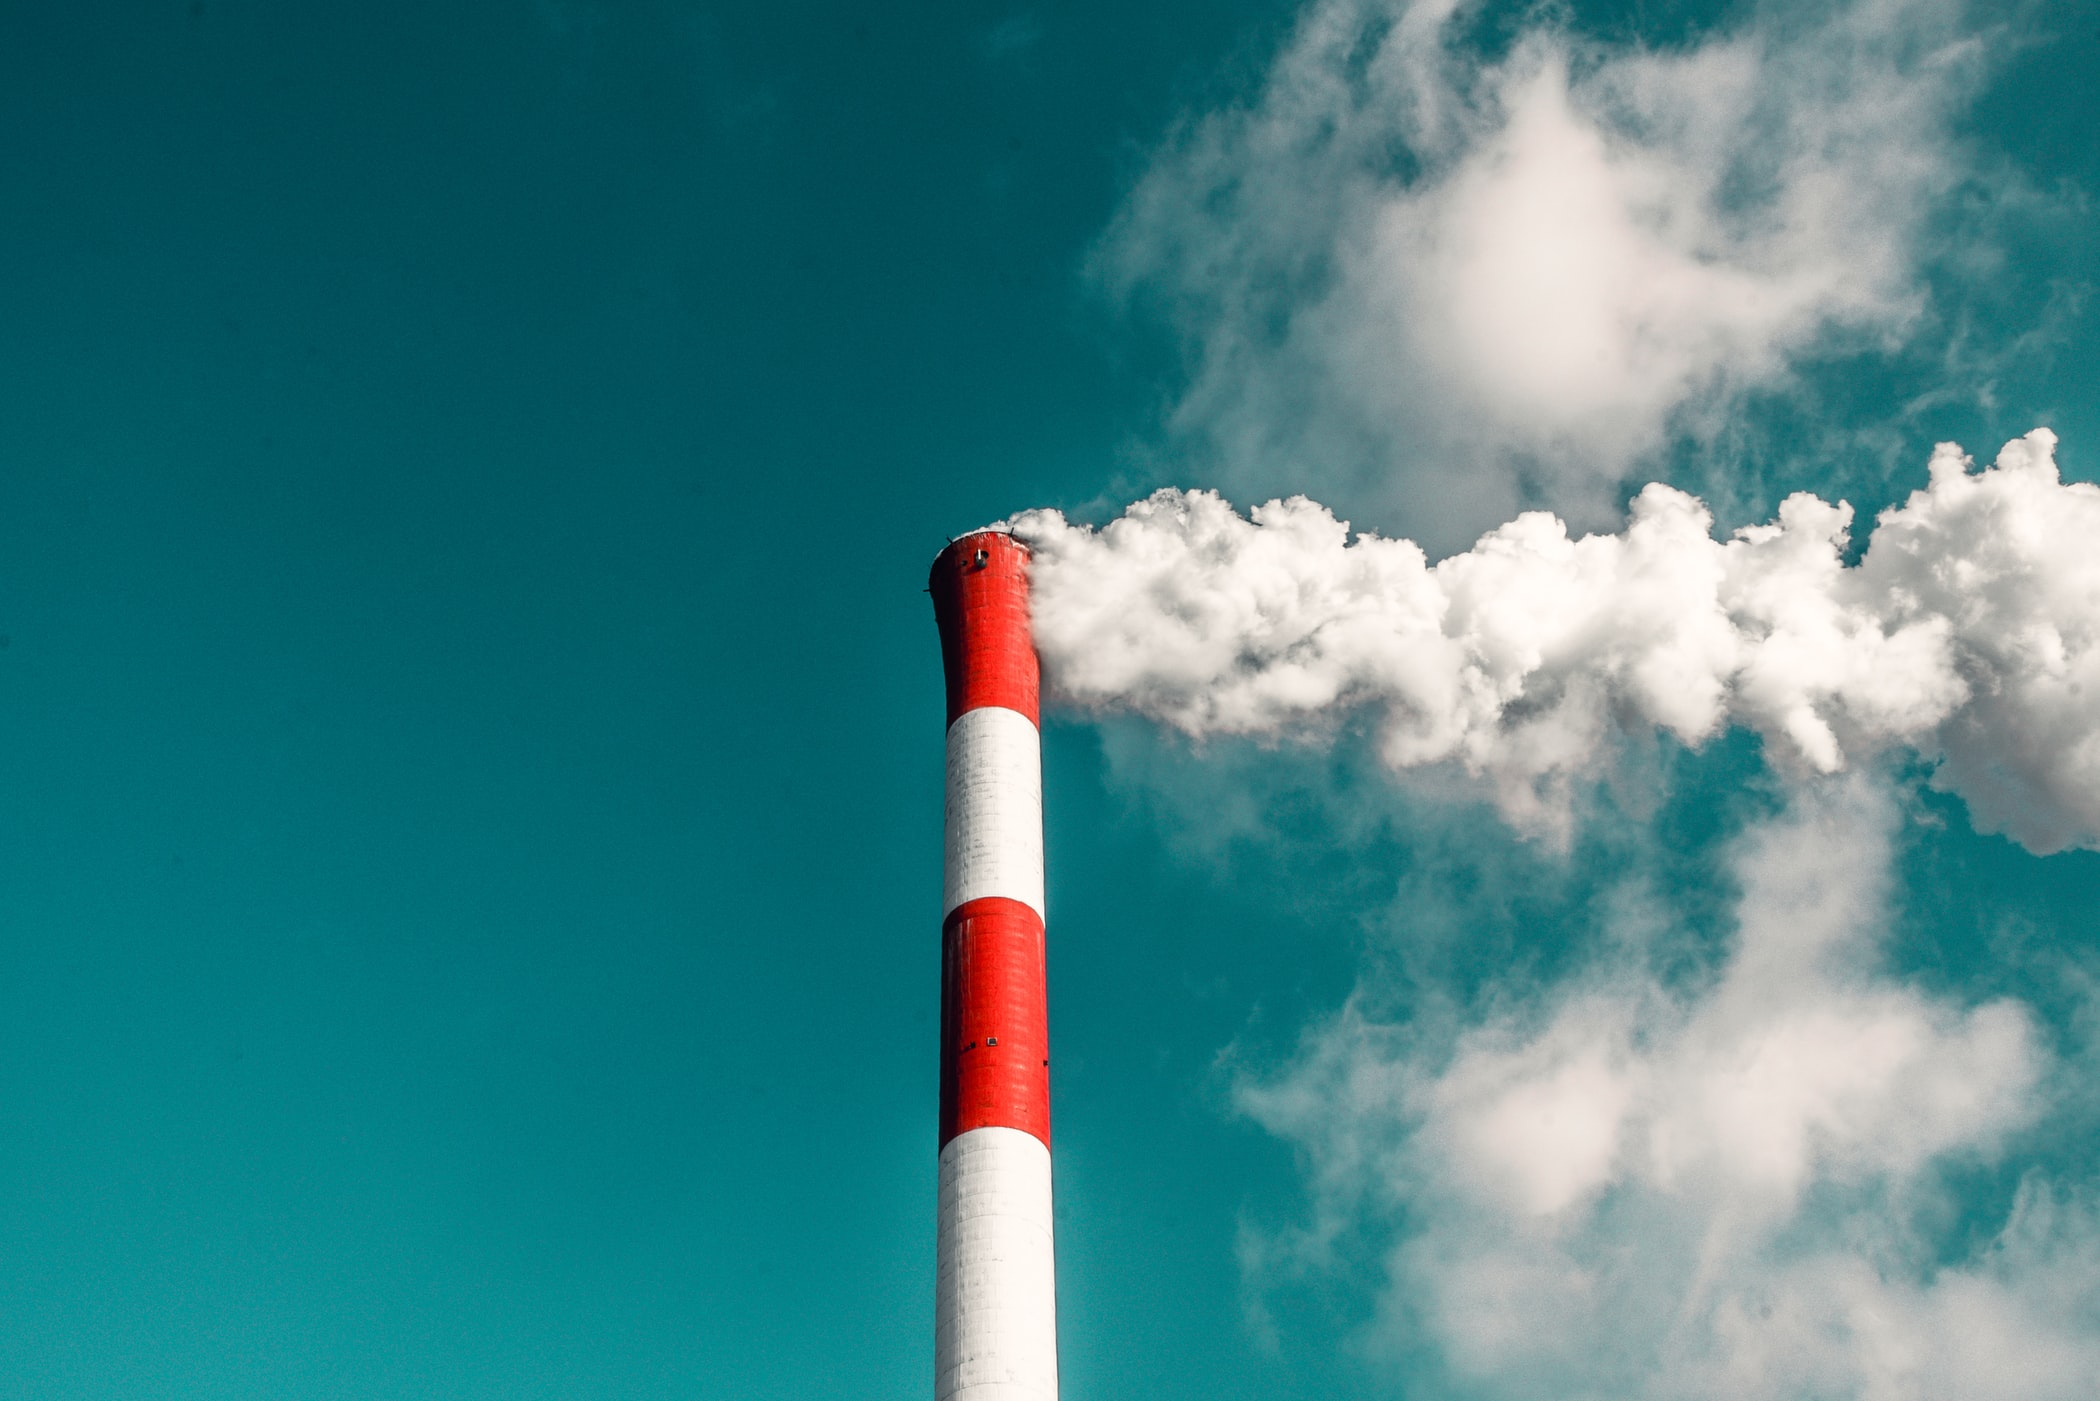 Photograph of a smoke stack with white smoke billowing out.